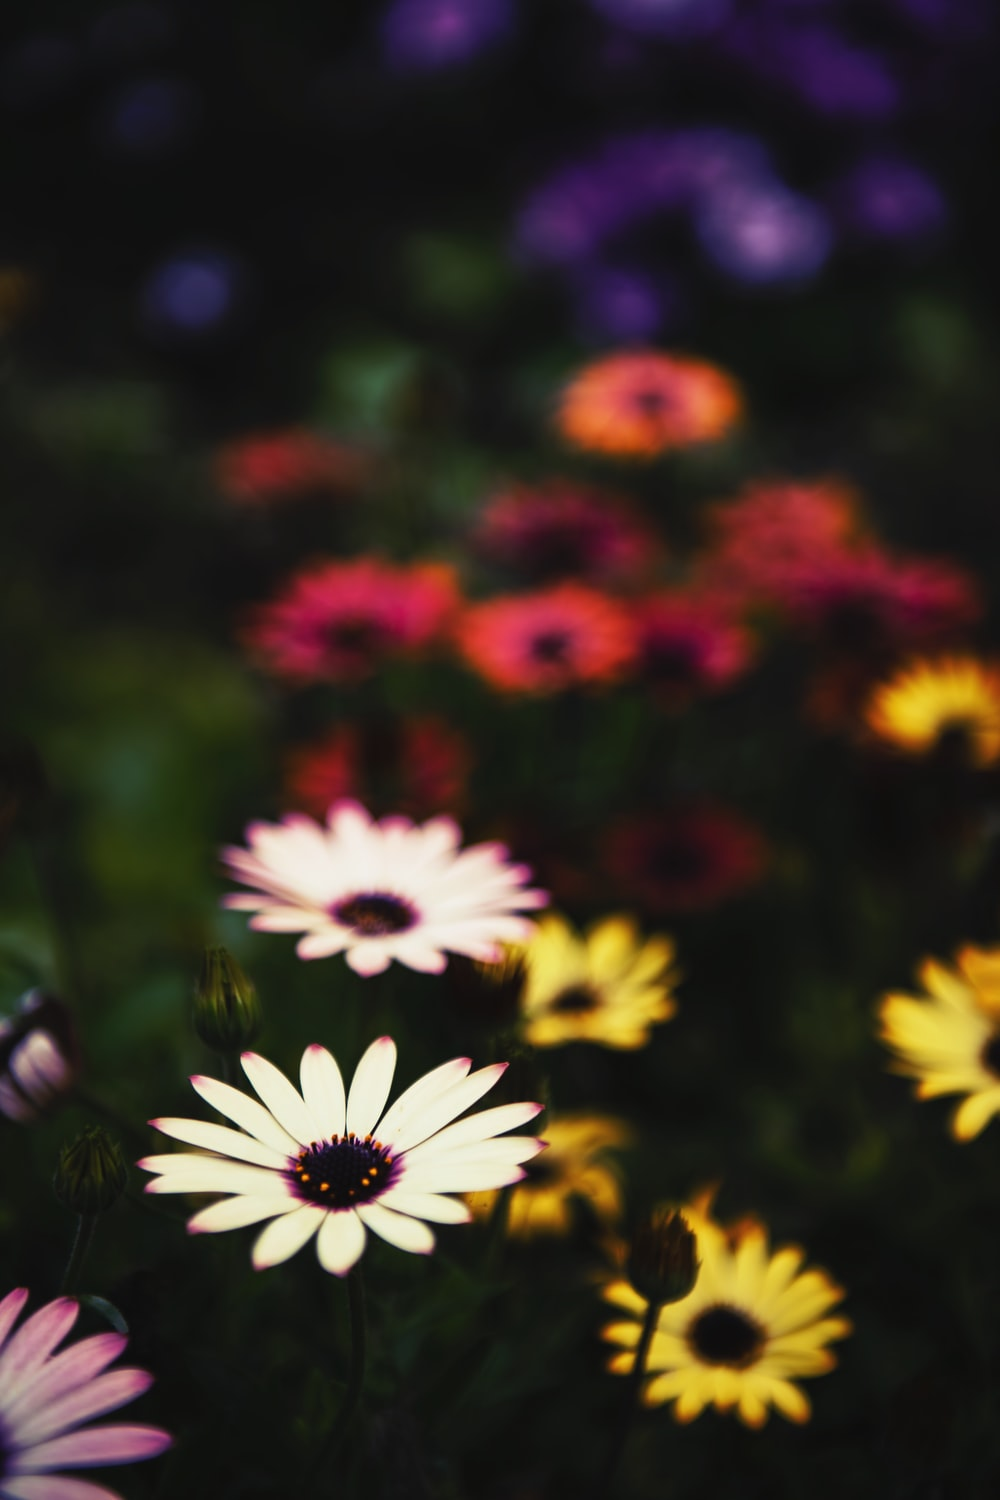 selective focus photography pink and yellow daisy flowers